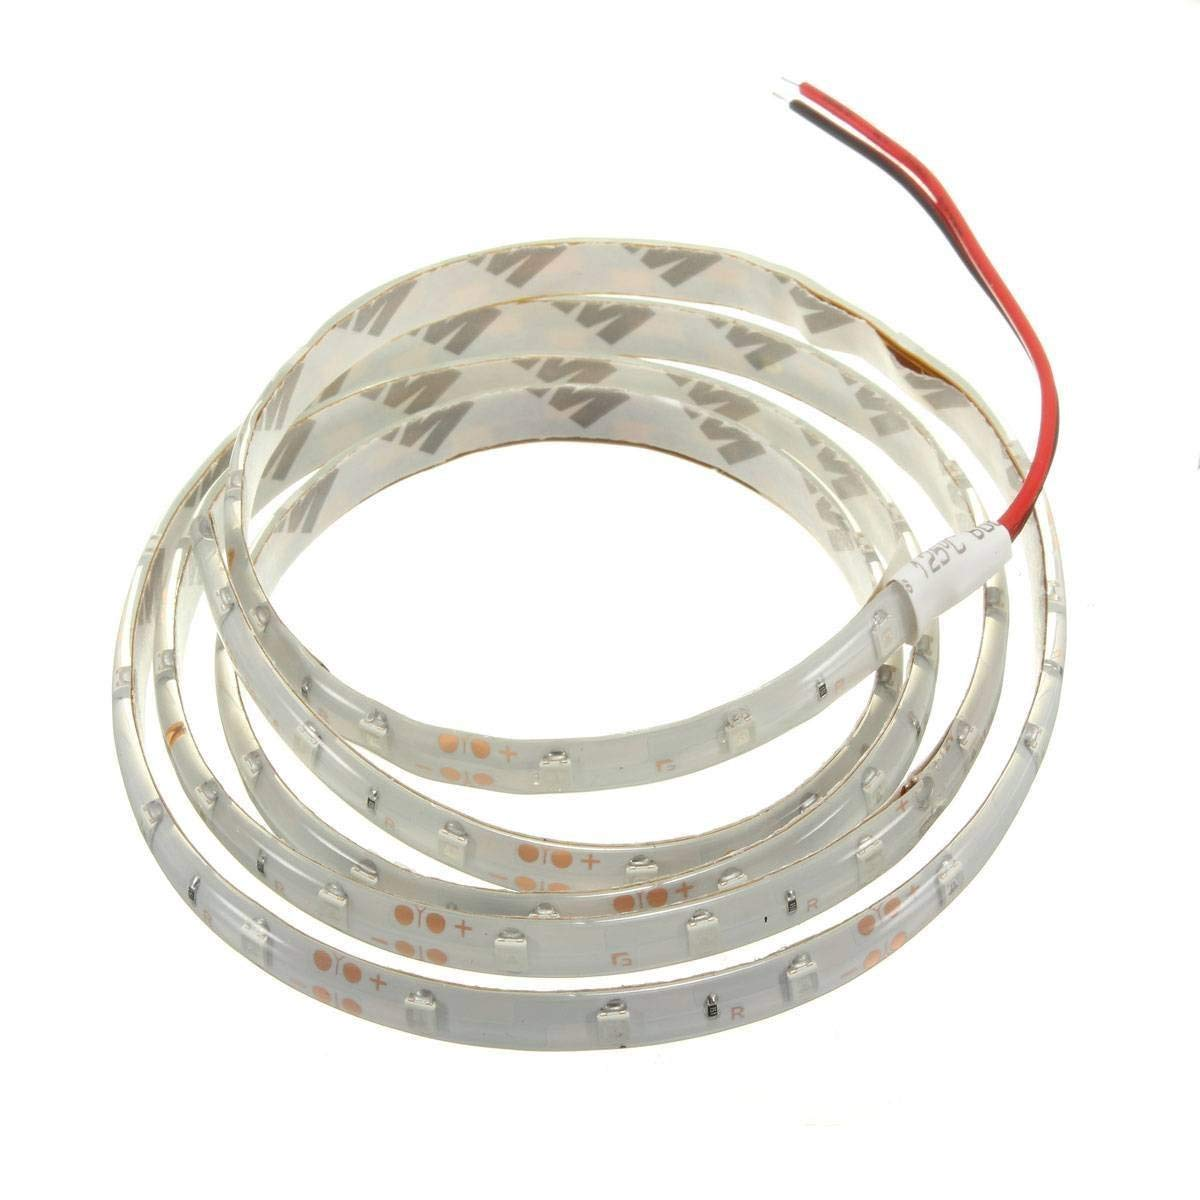 SODIAL(R) 1M 60-3528 SMD Waterproof LED Light Strip DC12V (Red)